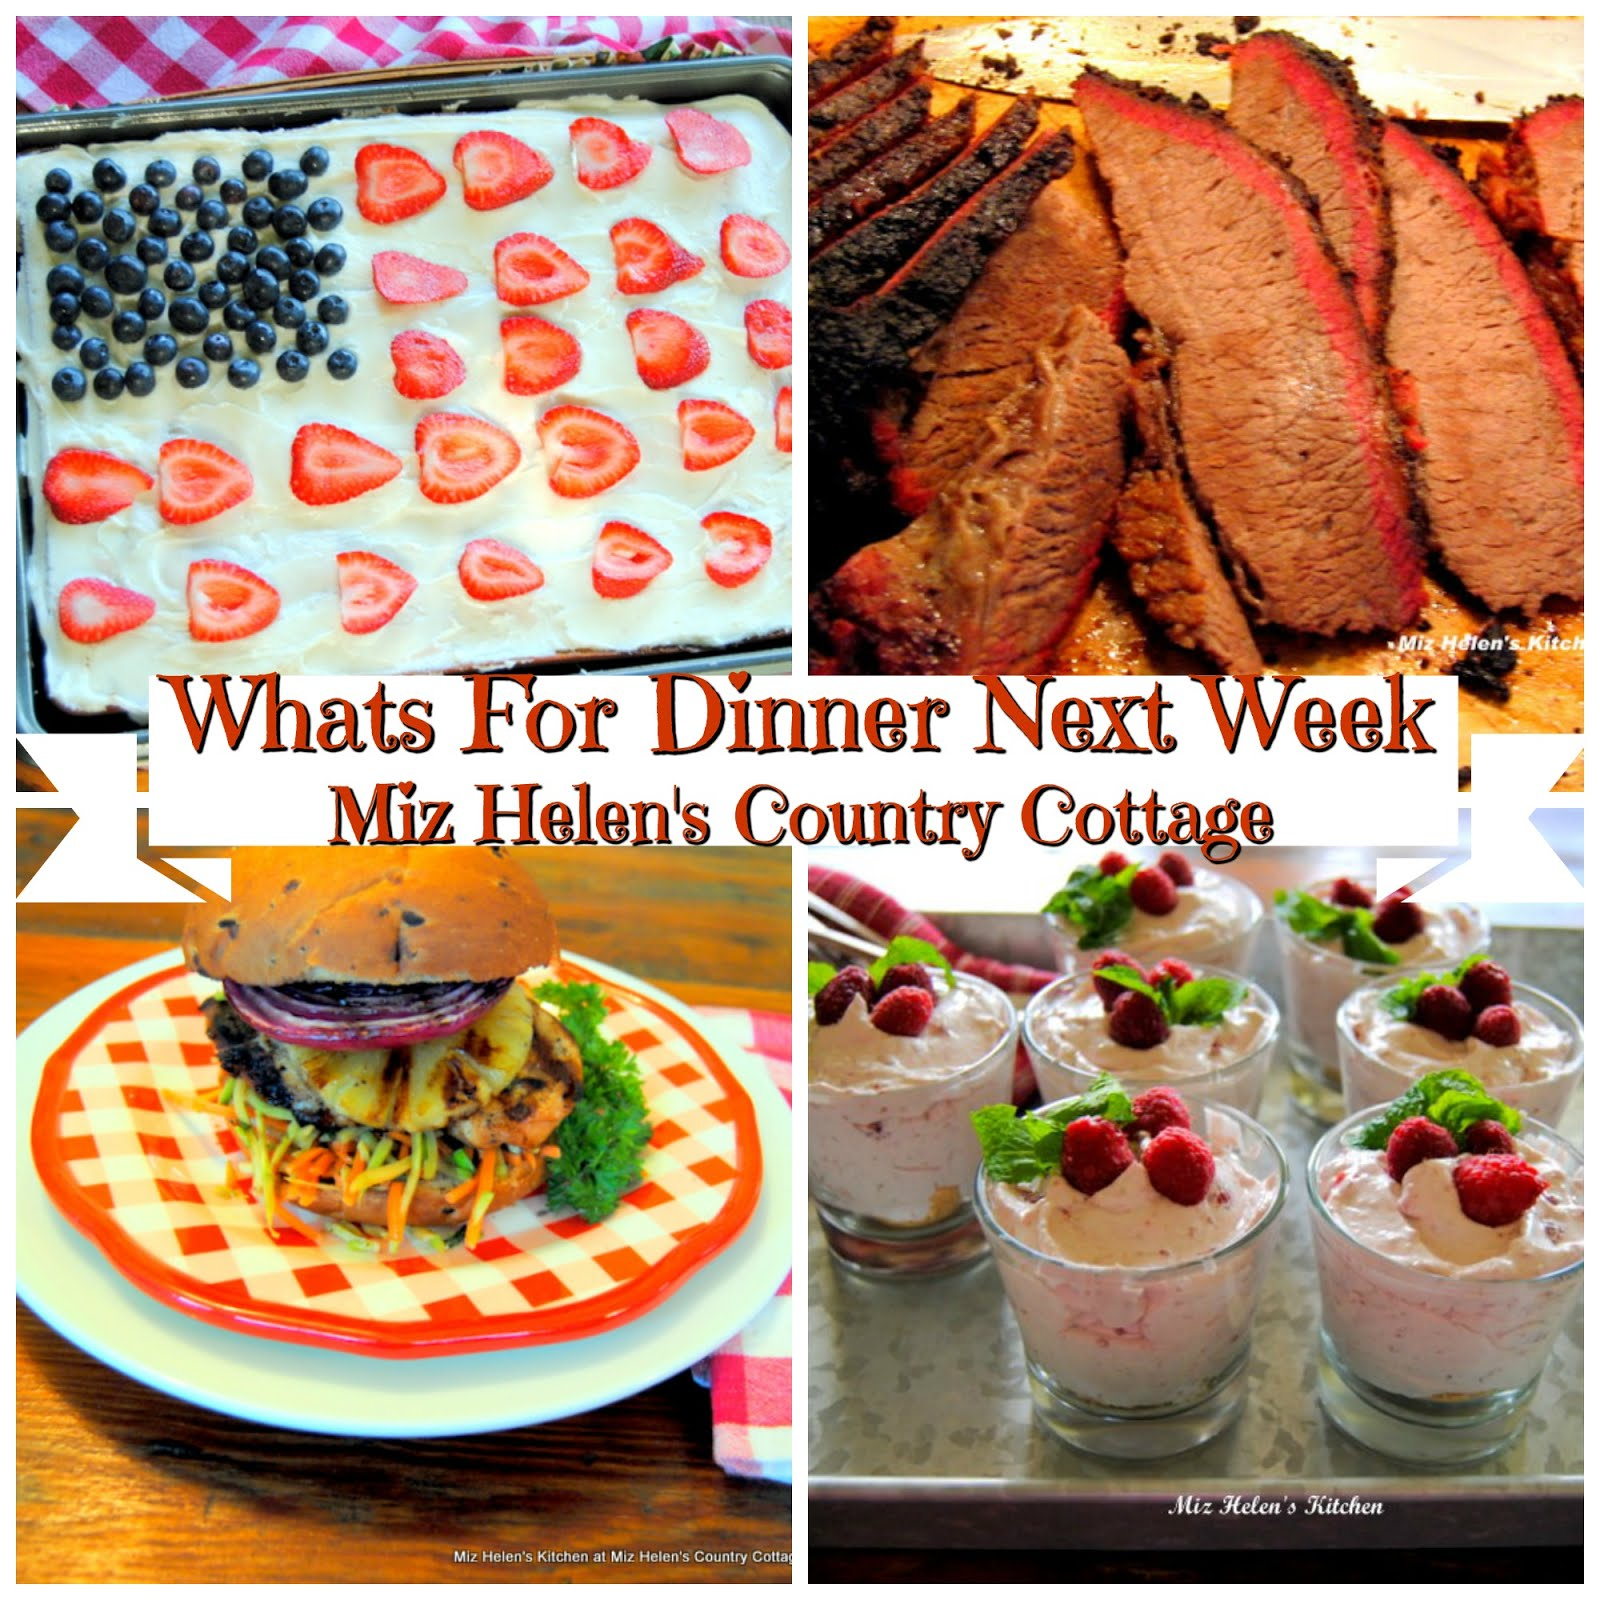 Whats For Dinner Next Week * Week of 5-26-19